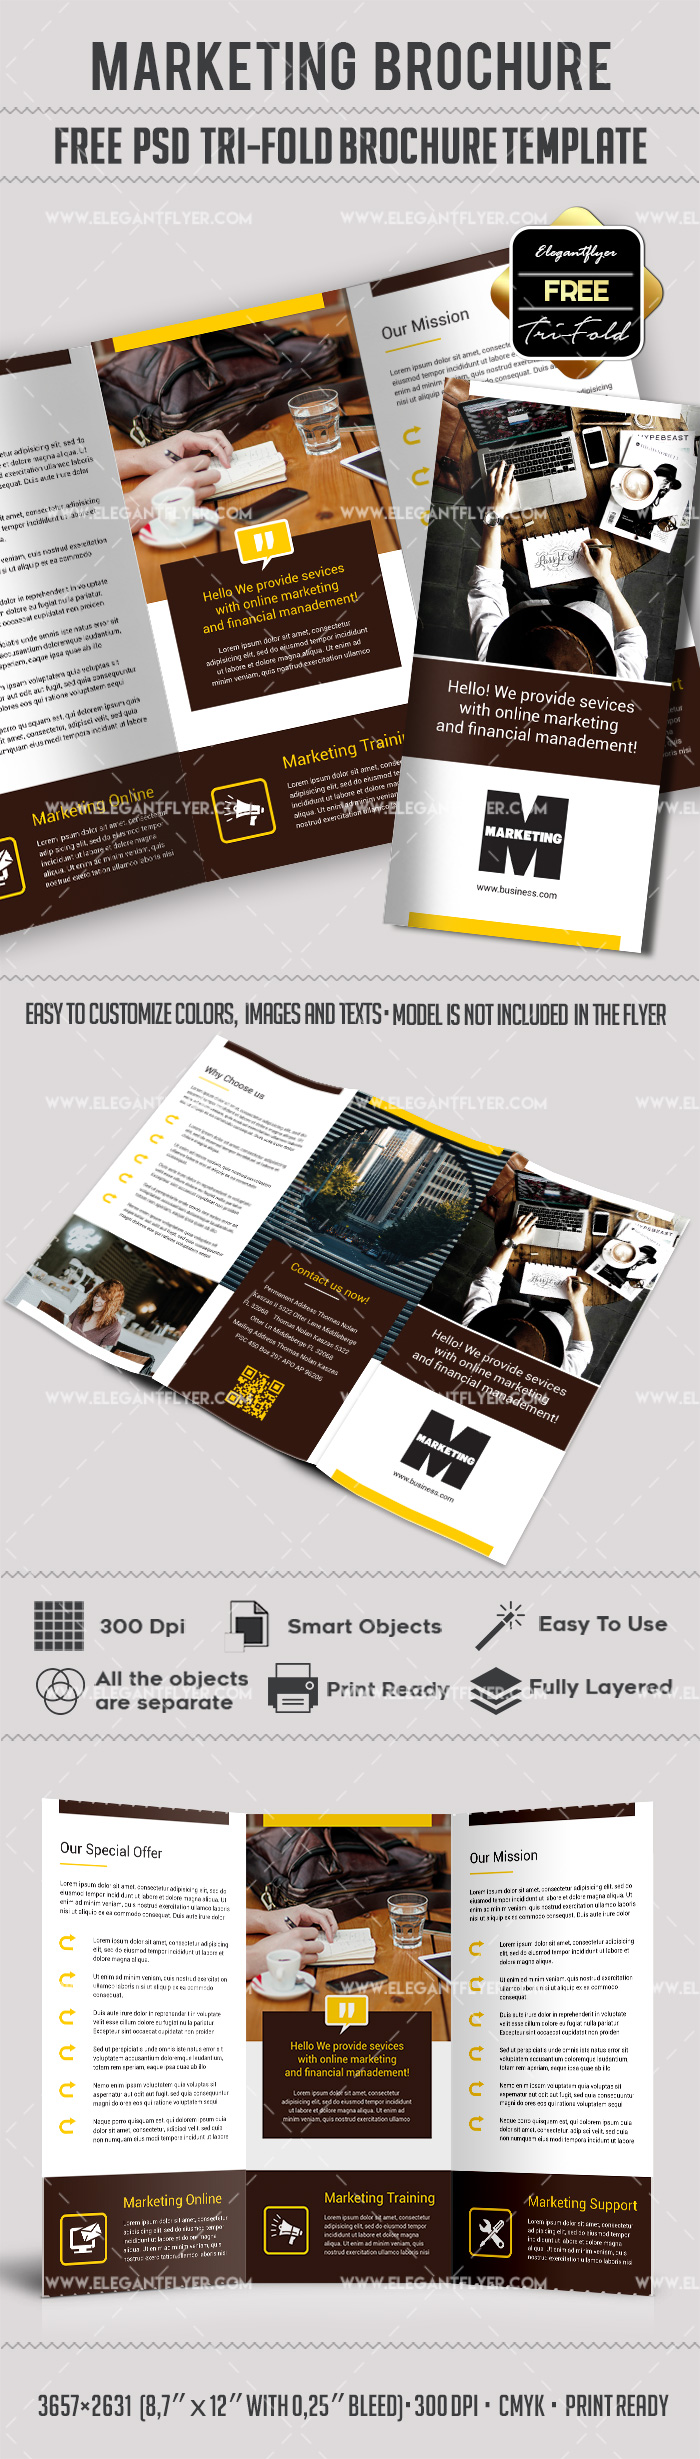 Marketing – Free Tri-Fold PSD Brochure Template